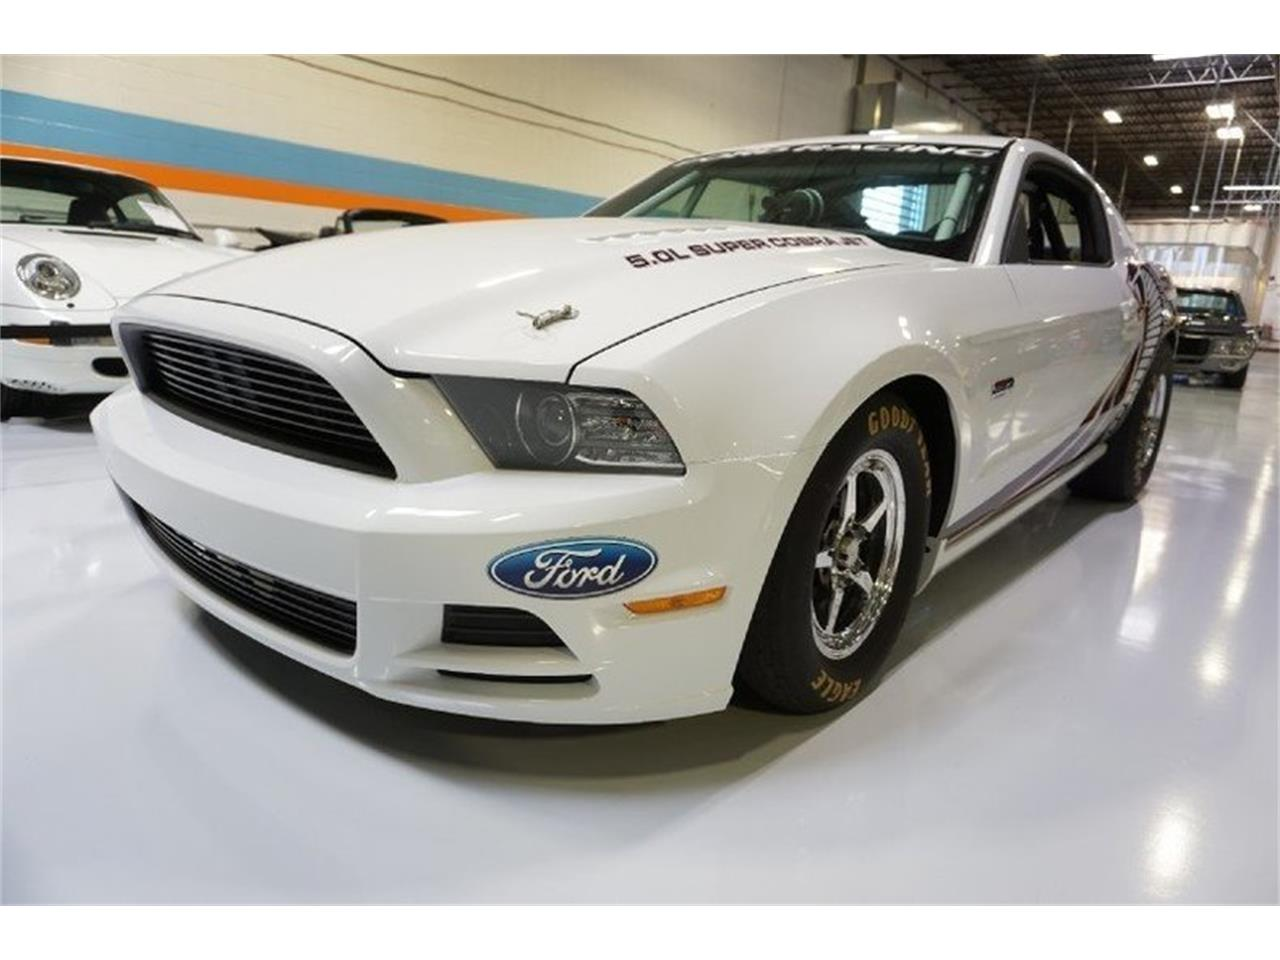 Large Picture of '14 Ford Mustang located in Solon Ohio - $99,000.00 - MC66